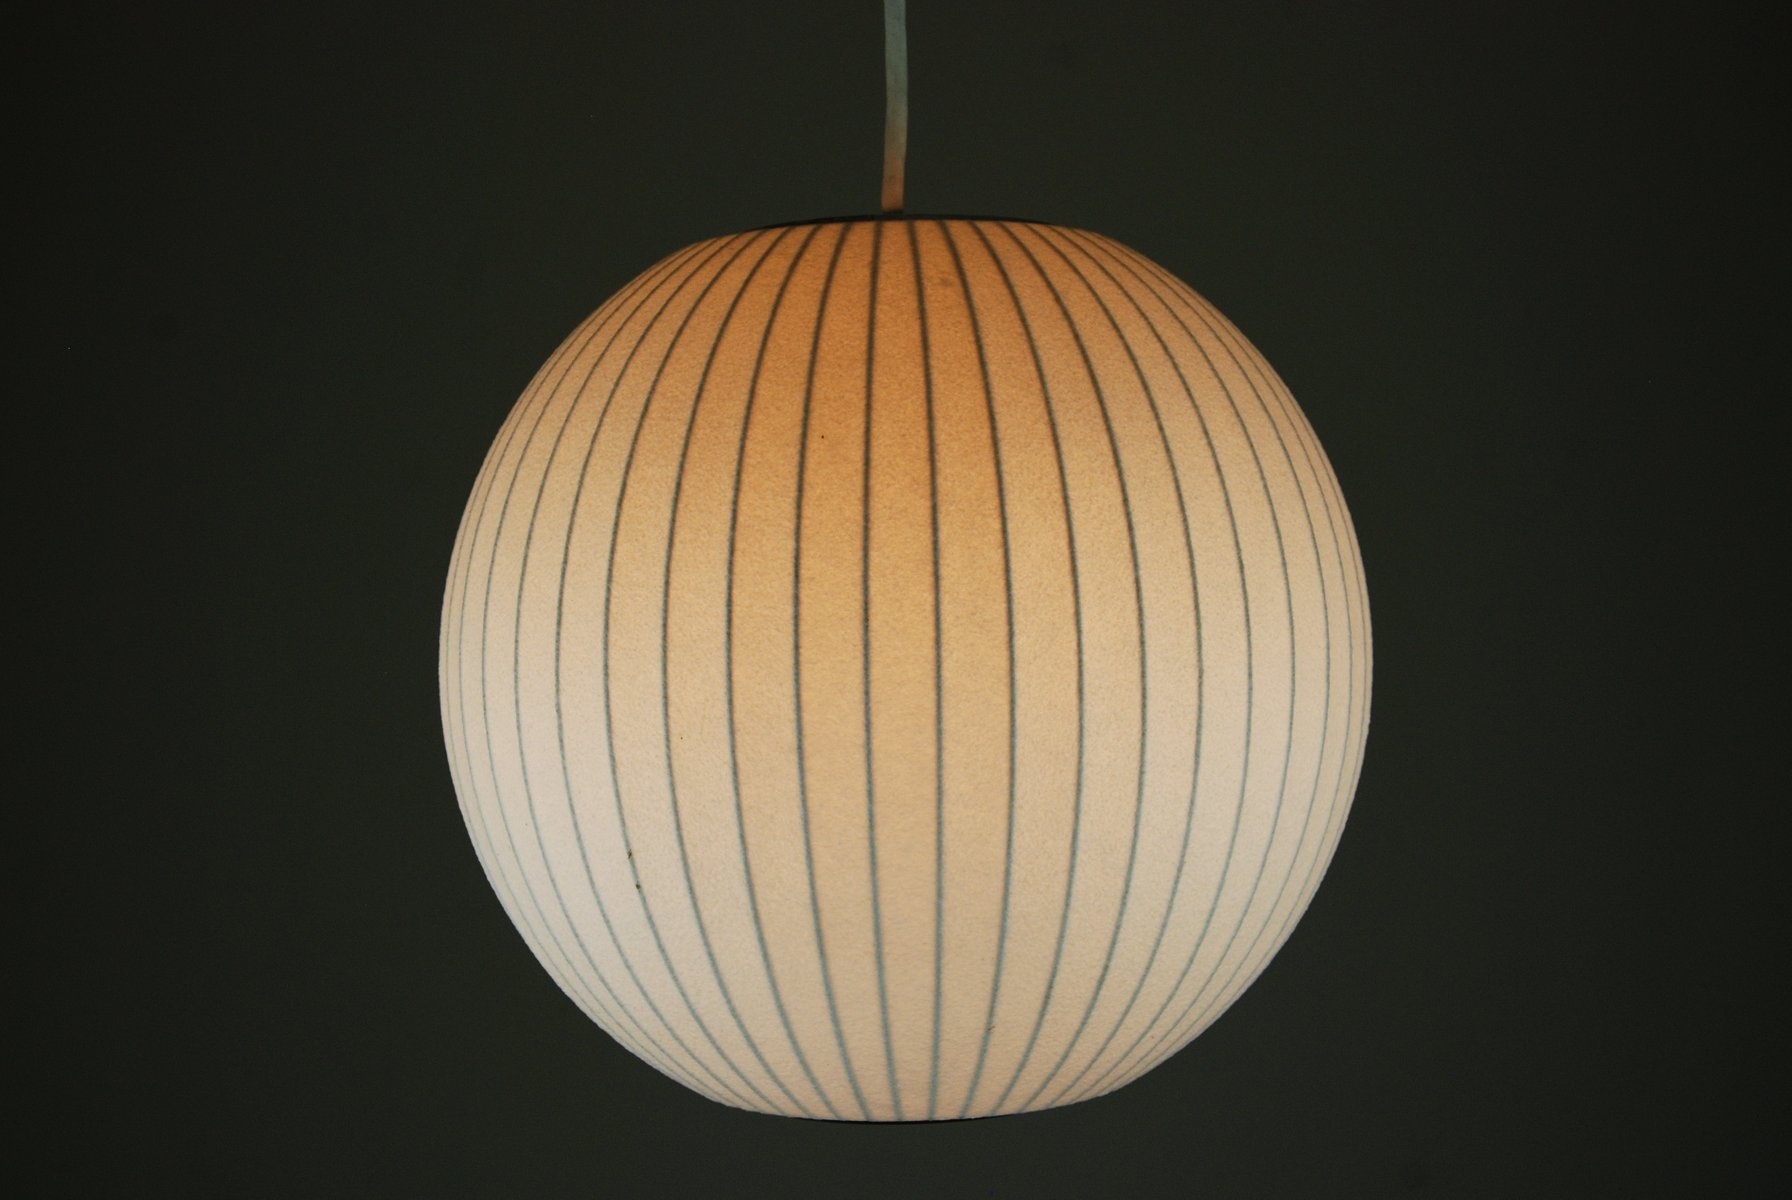 george nelson lighting. Ball Lamp By George Nelson For Modernica Lighting